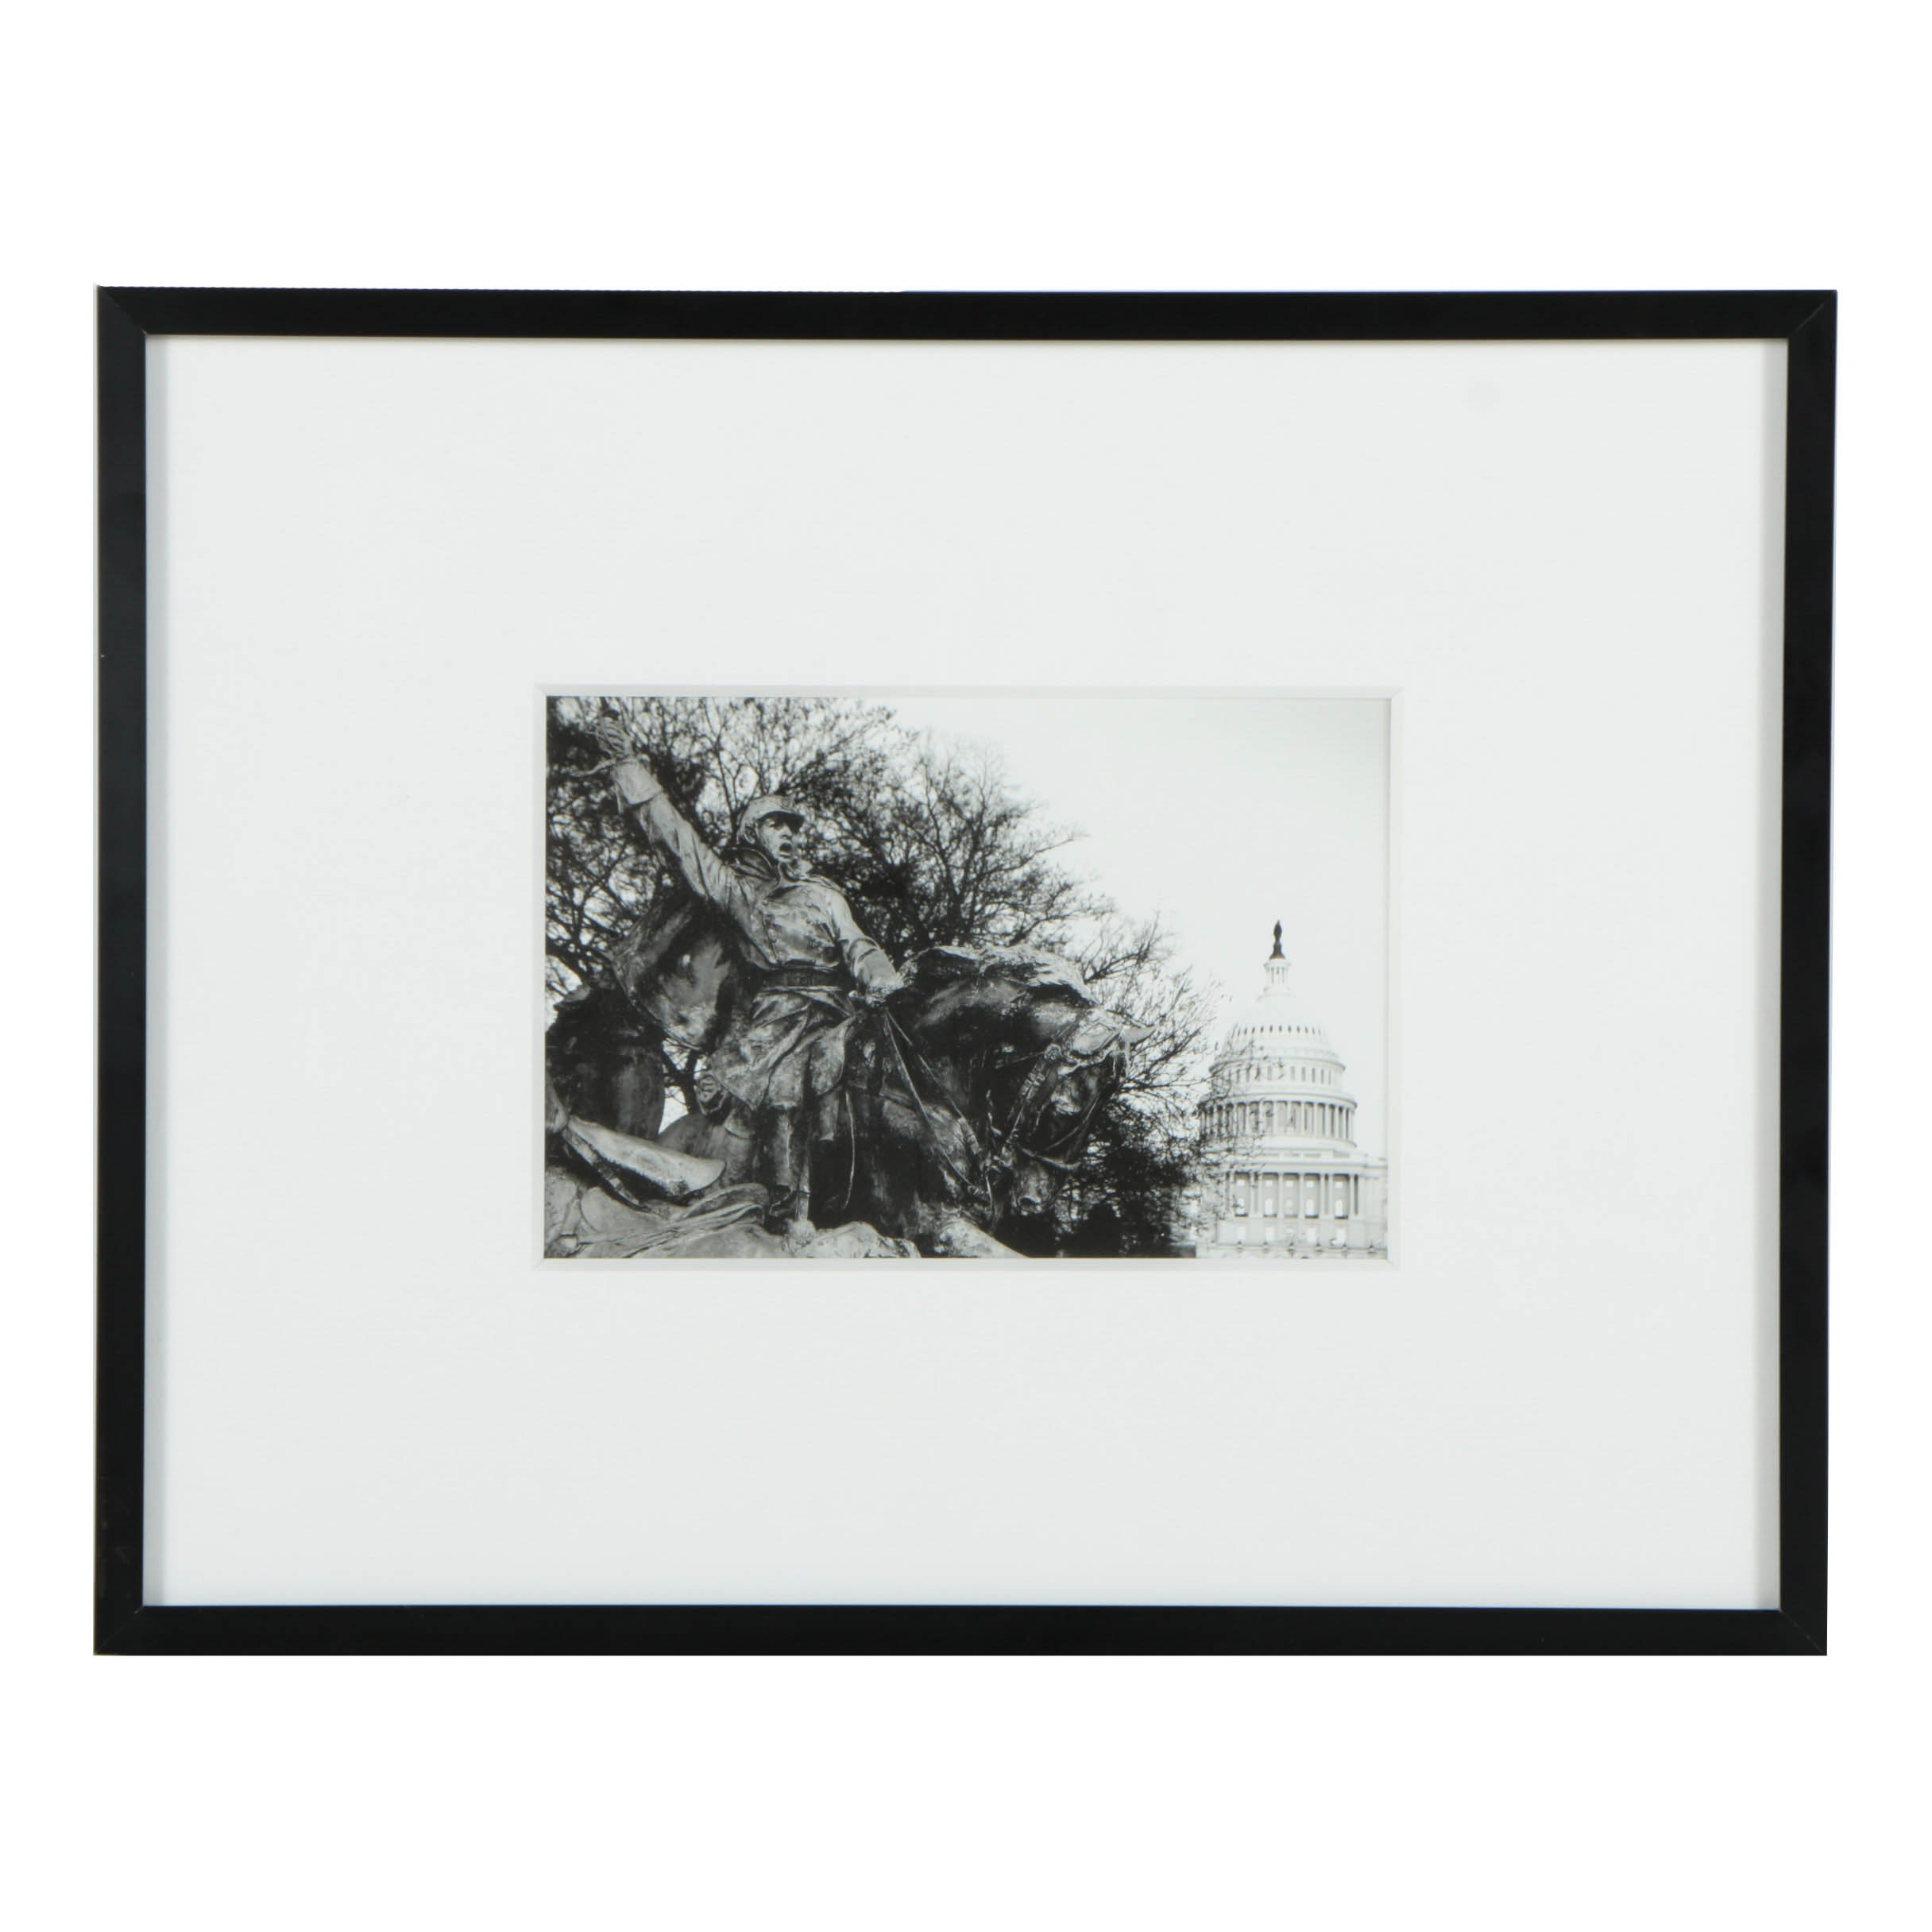 Black and White Photograph on Paper of Ulysses S. Grant Memorial